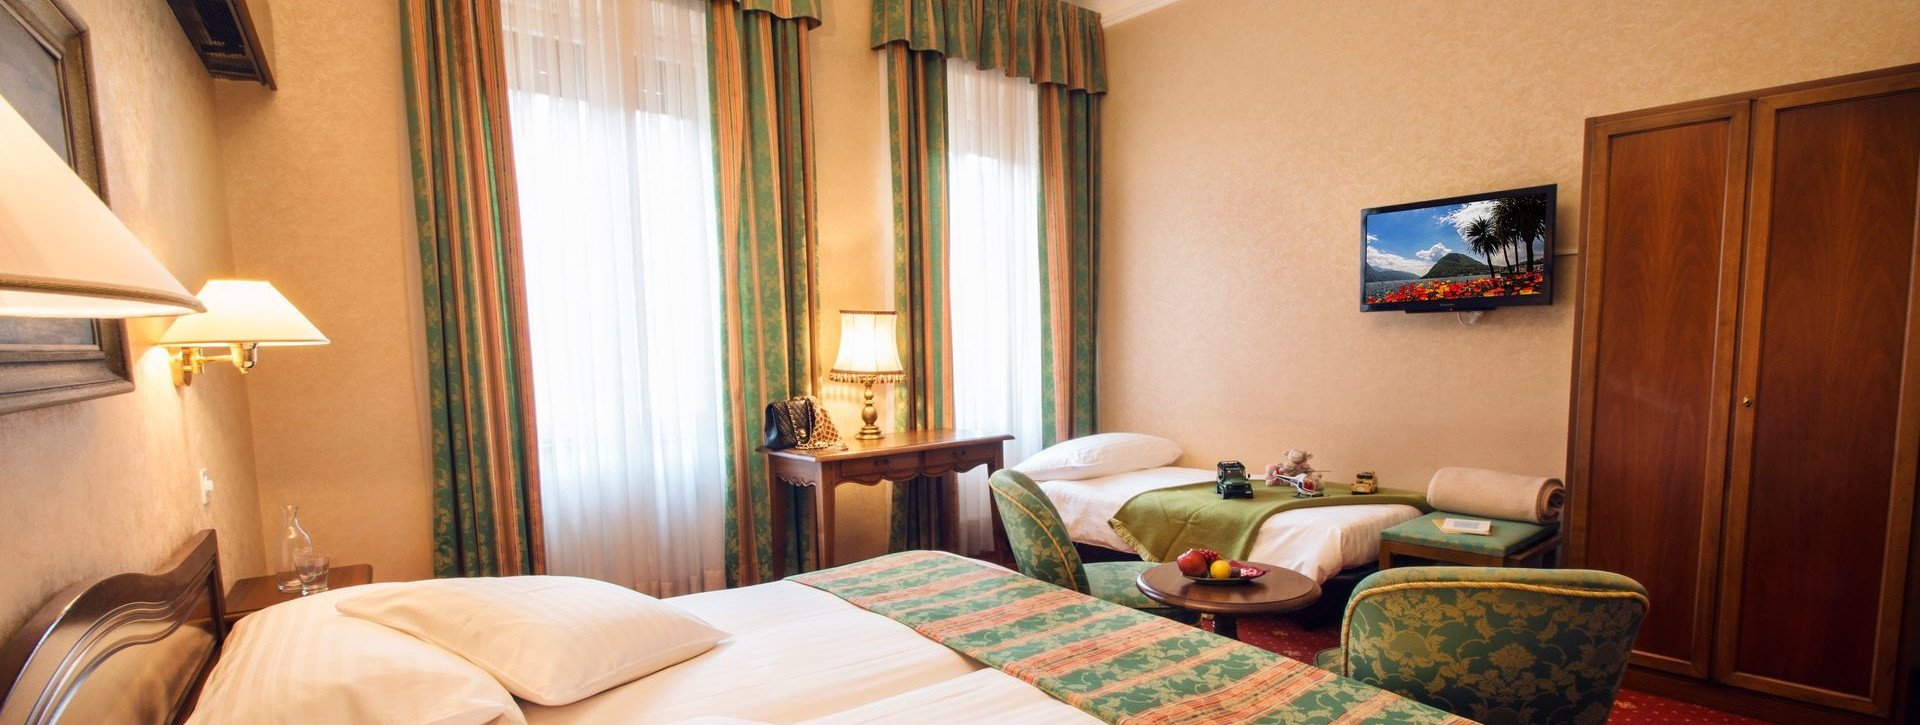 Triple room with three beds in the International au Lac Historic Lakeside Hotel